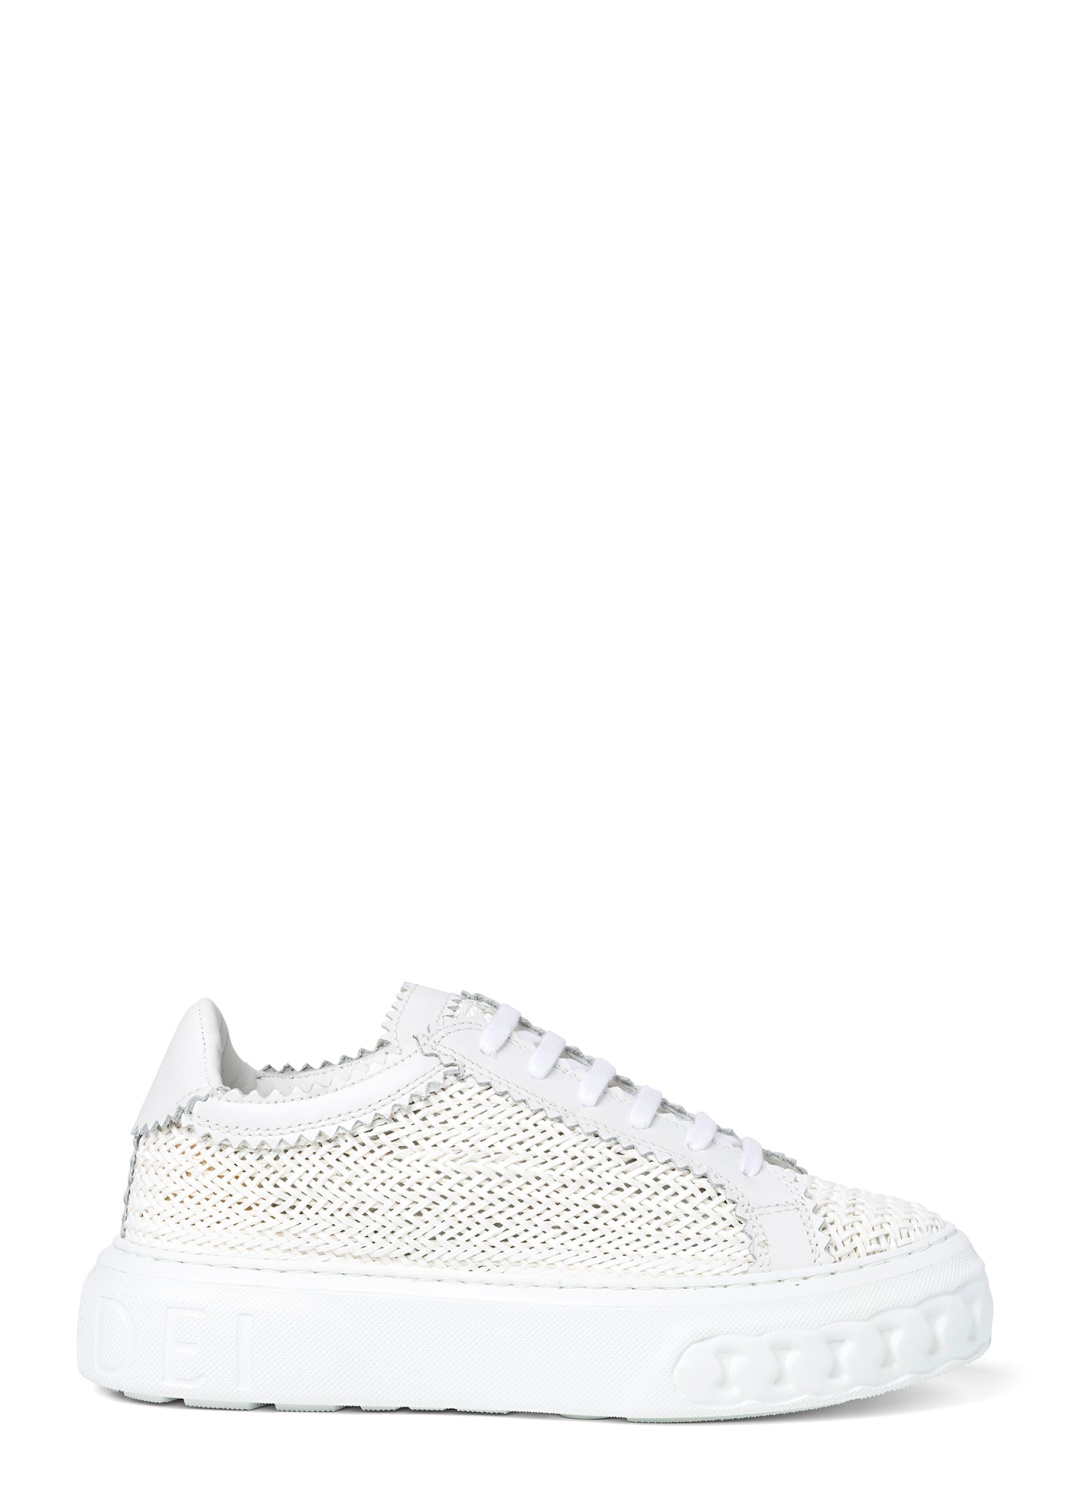 Woven Leather Sneaker image number 0